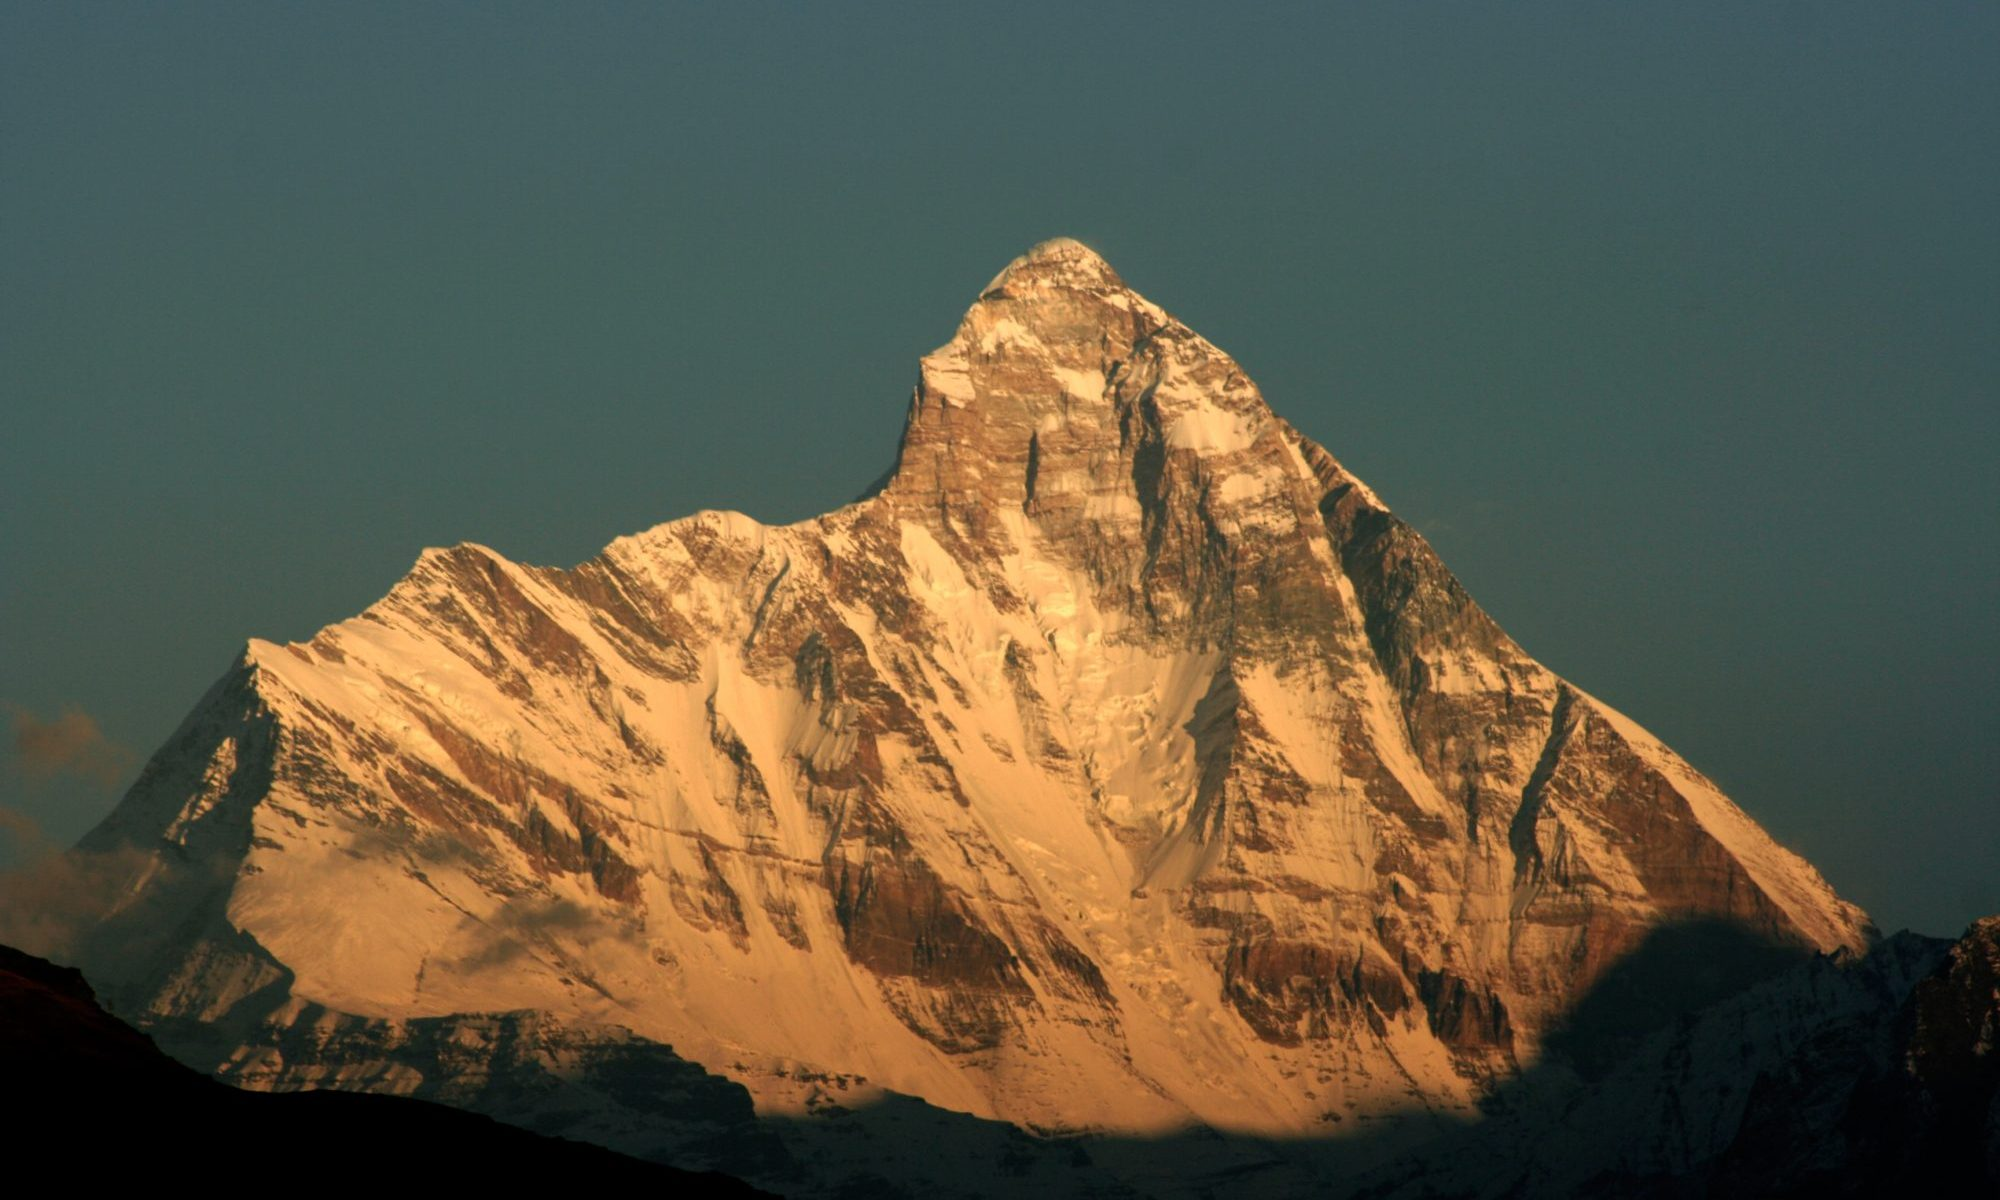 India - Nanda Devi. Search efforts continue for 8 climbers missing in the Indian Himalayas, but hopes are fading after possible avalanche.